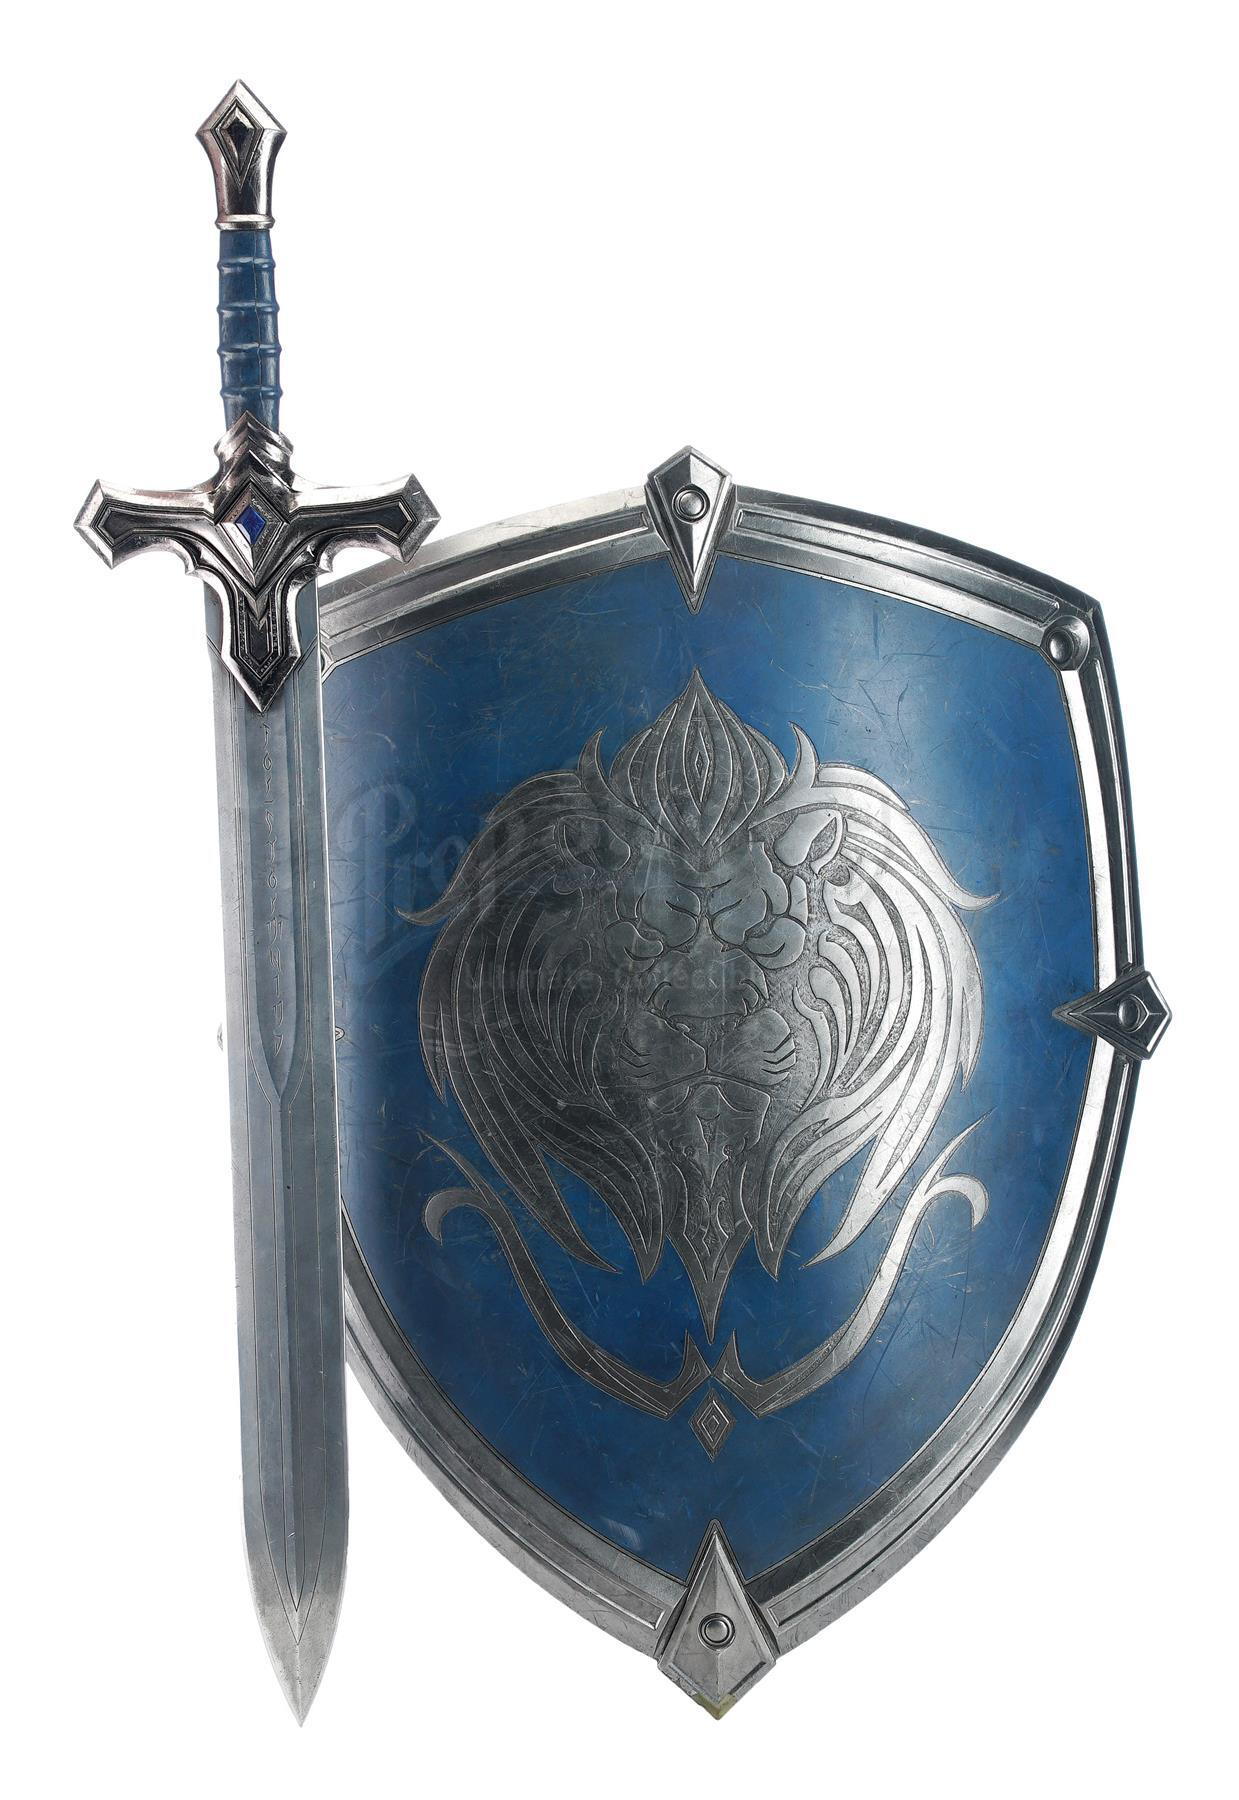 Lot # 412: WARCRAFT - Alliance Foot Soldier's Sword and Shield